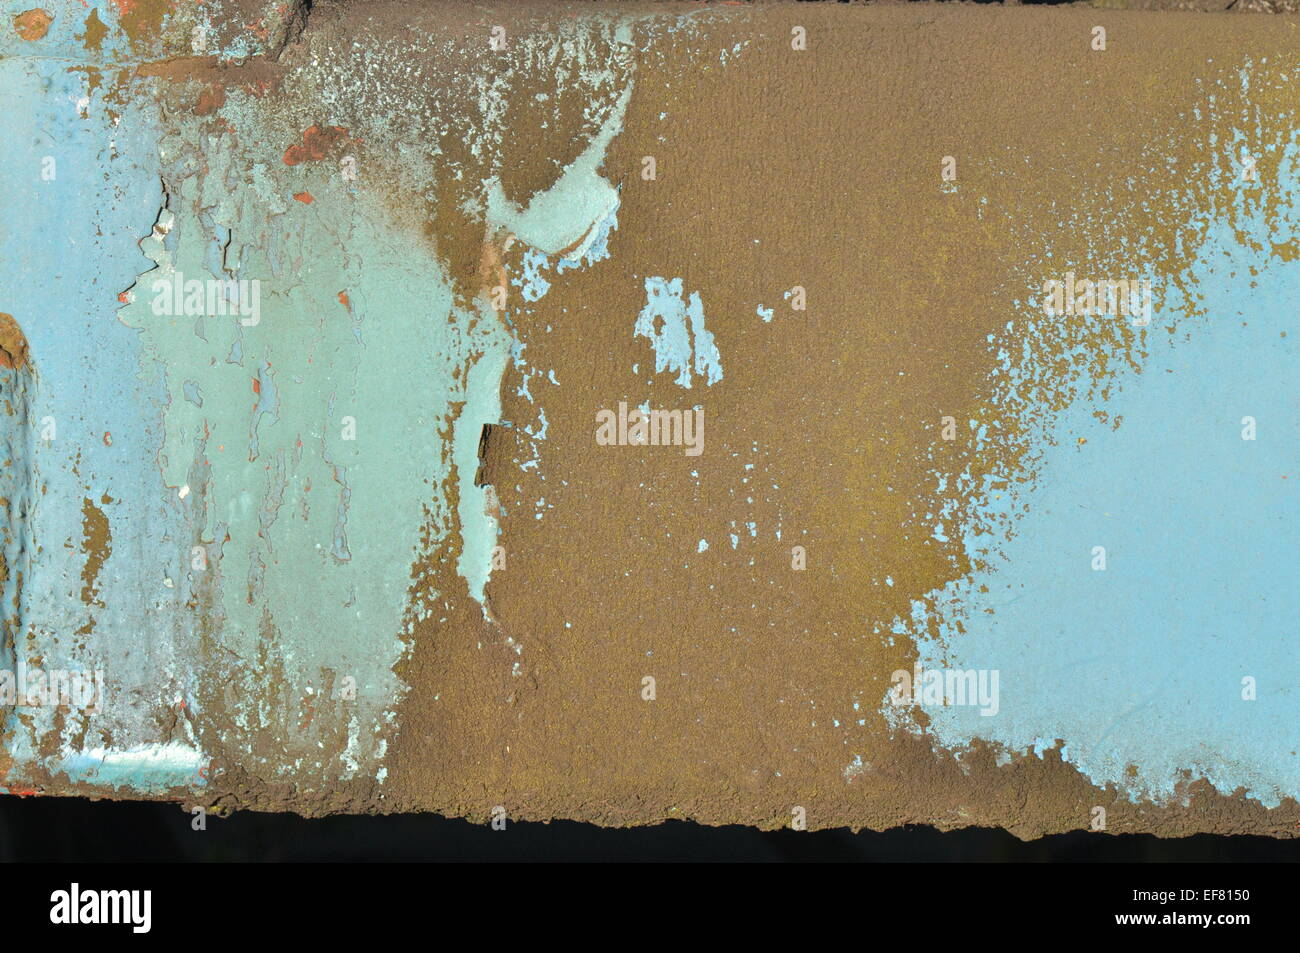 Rusting and Peeling Paint Texture Stock Photo 78237852 Alamy